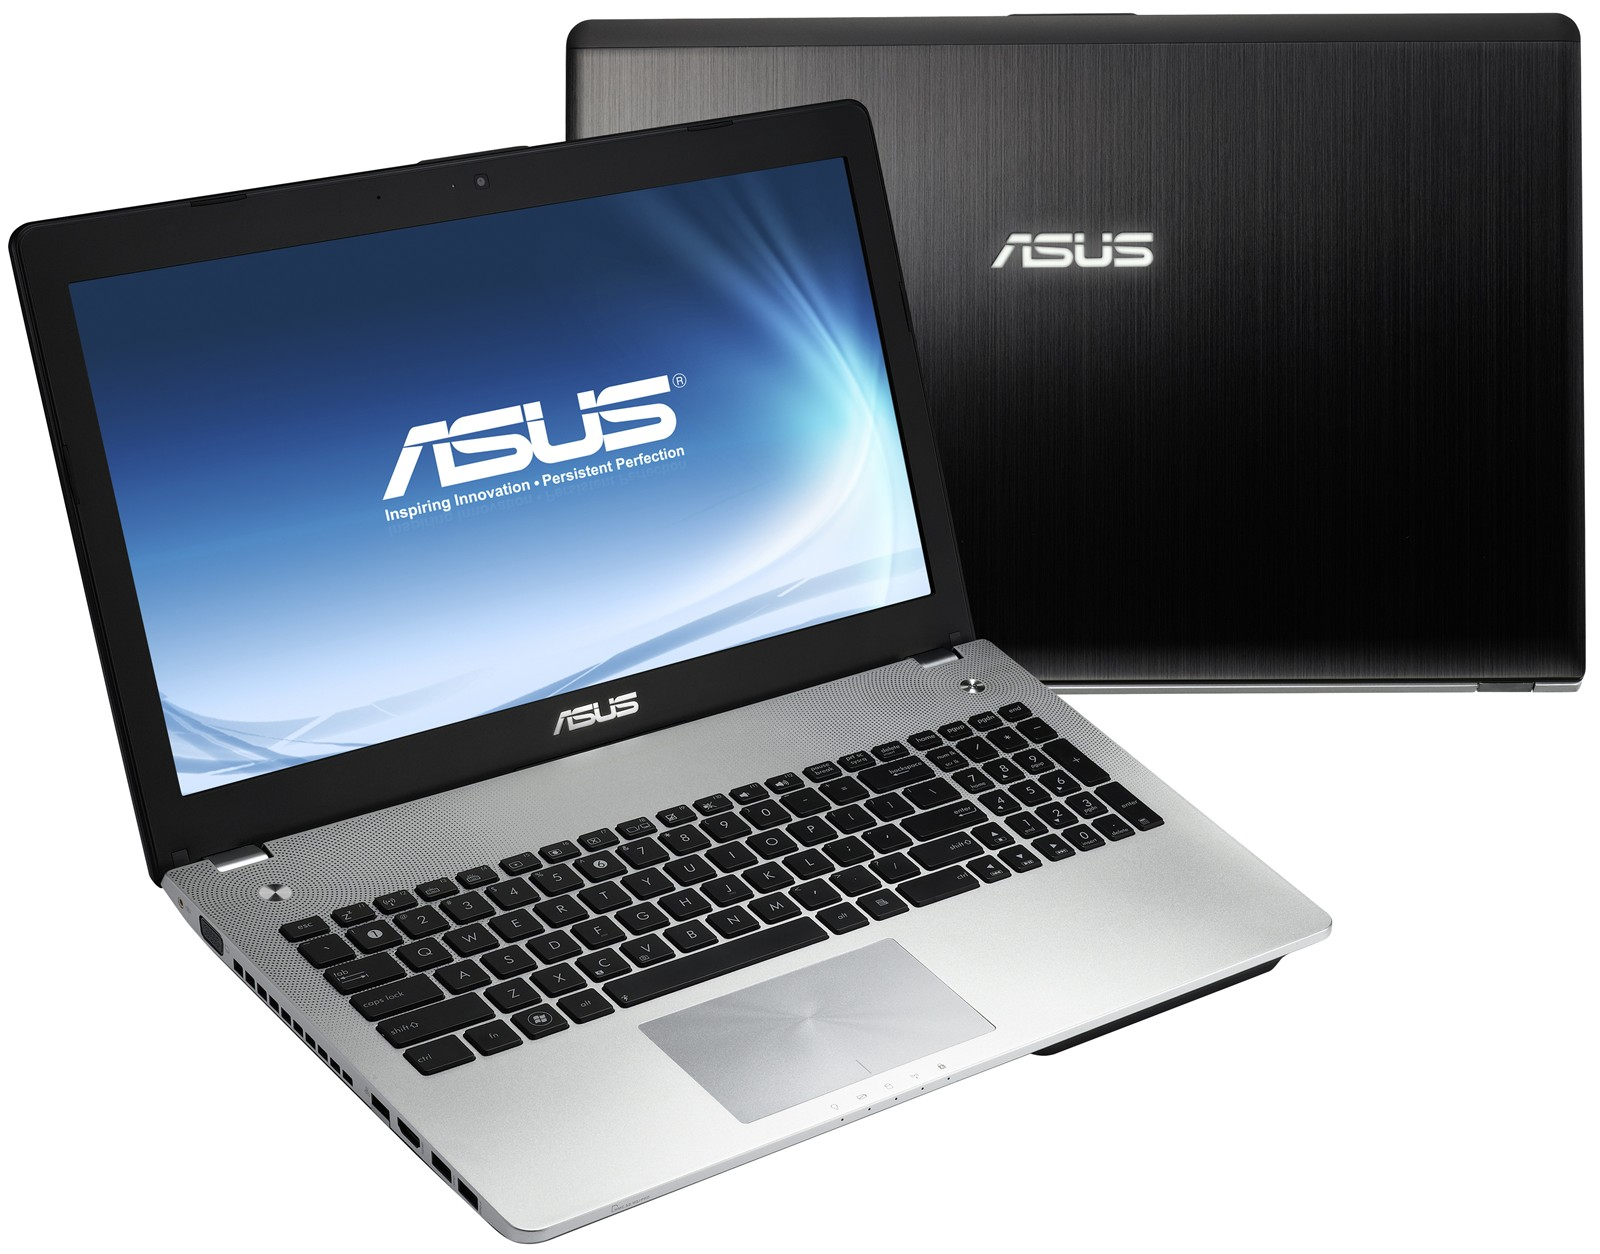 AsusN56VZ-DS71 Laptop Technical Specifications and Price